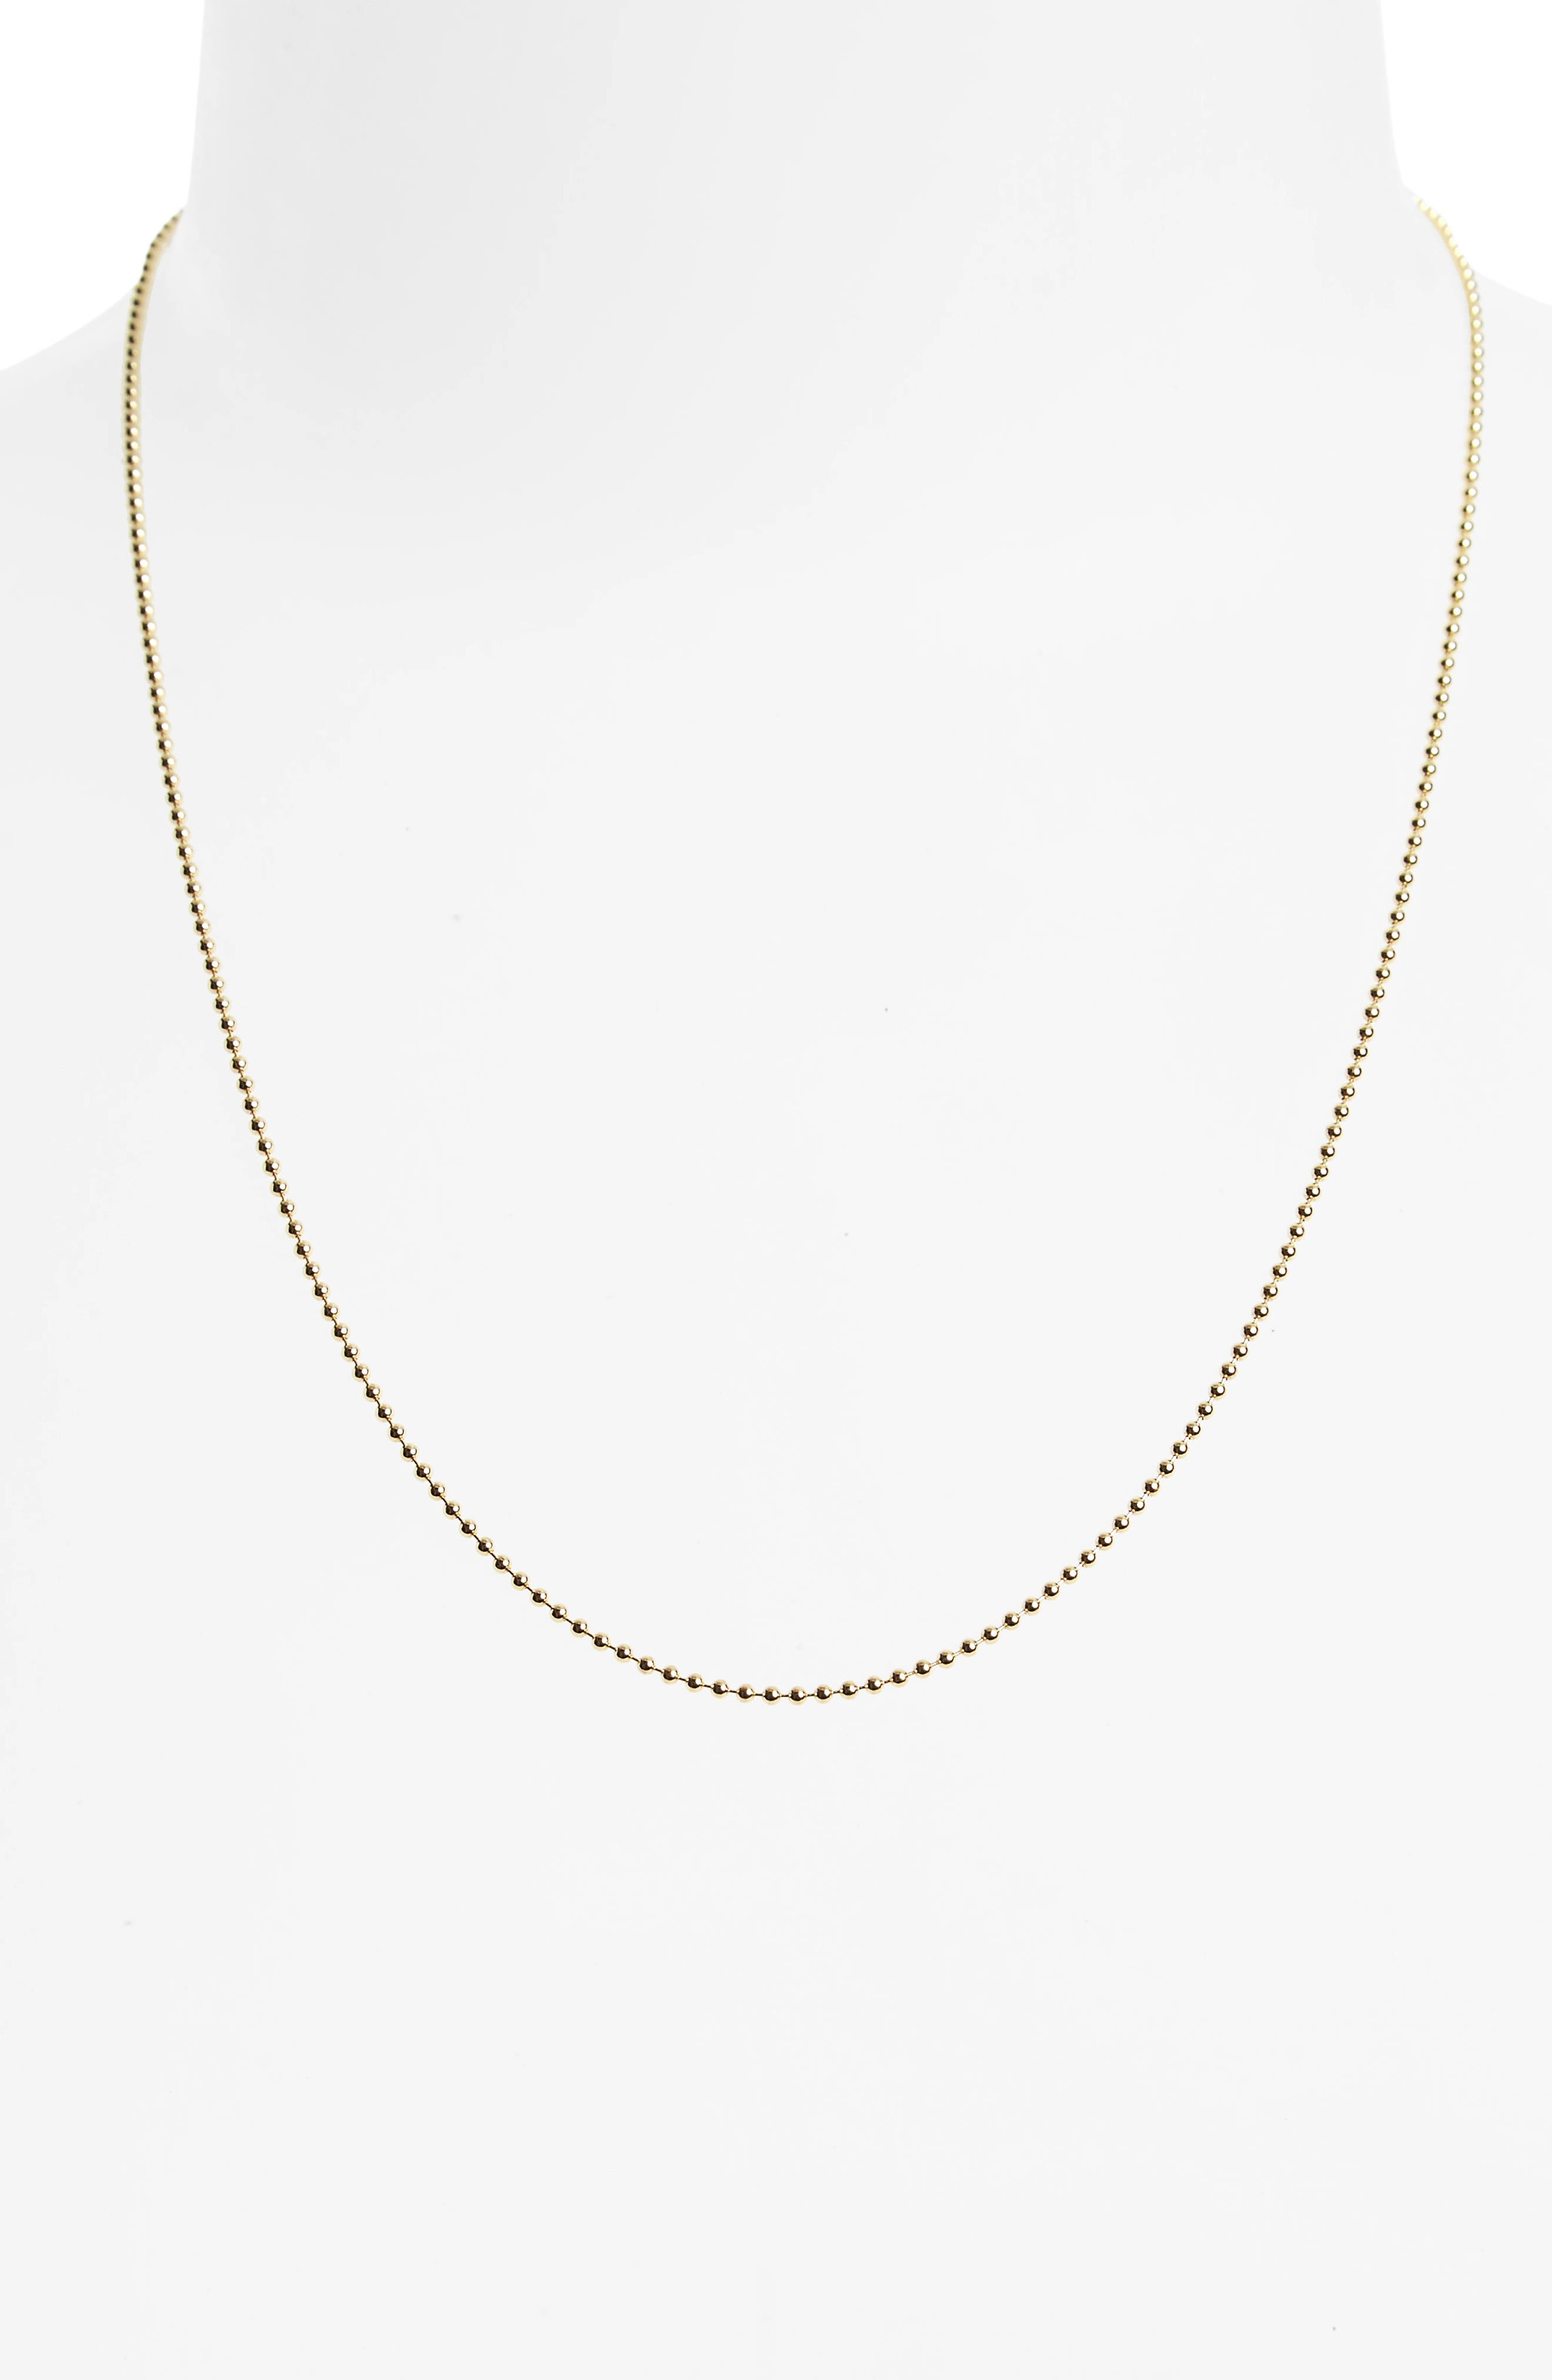 Temple St. Clair 18-Inch Ball Chain Necklace,                             Alternate thumbnail 2, color,                             YELLOW GOLD